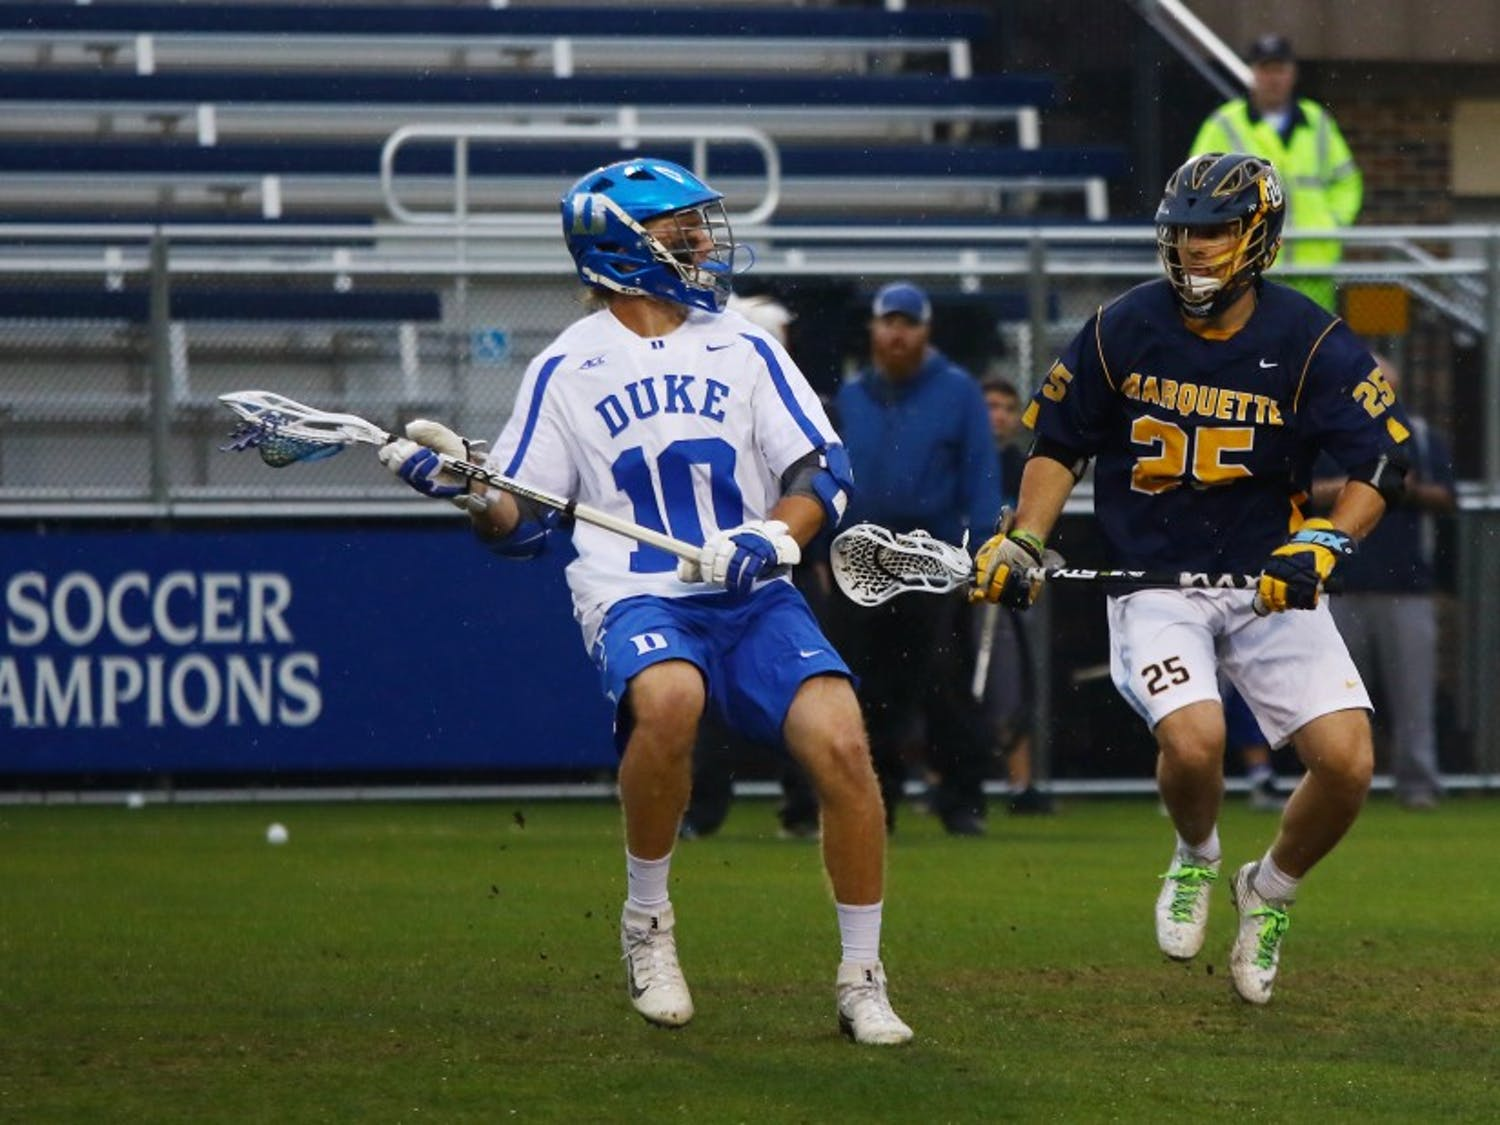 Midfielder Deemer Class was held in check when the Blue Devils played Notre Dame during the regular season, but the All-ACC performer and his teammates are coming off a 16-1 blowout win.